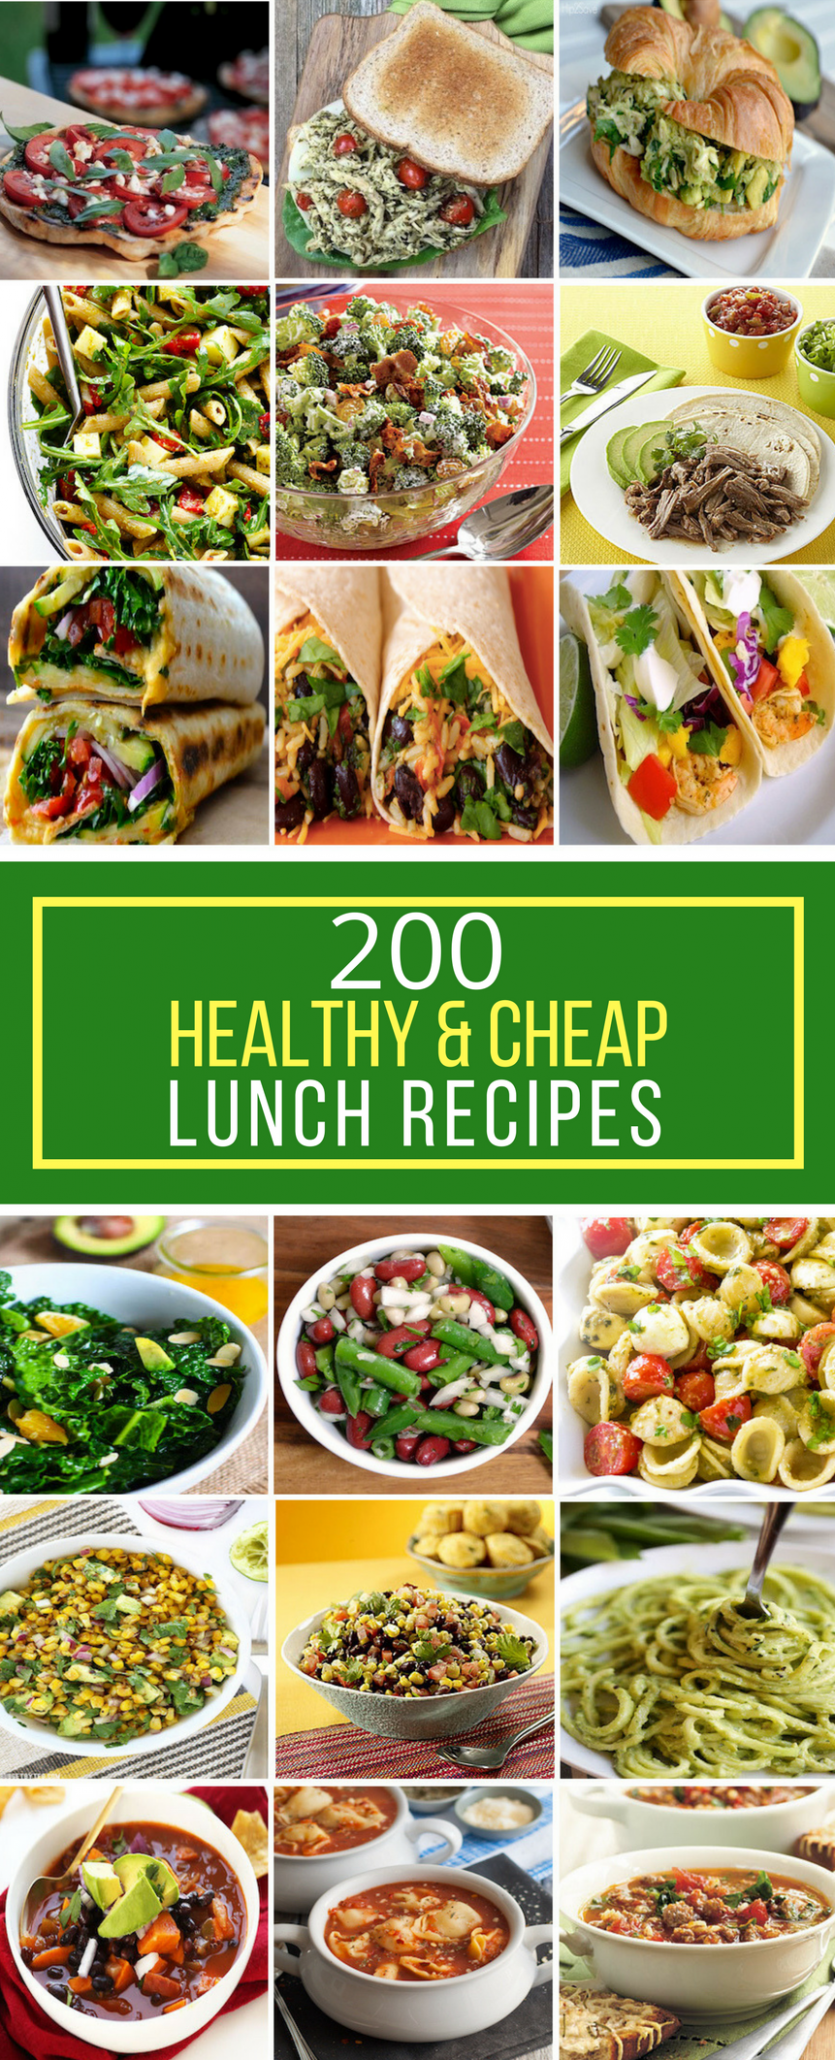 12 Healthy & Cheap Lunch Recipes | Cheap healthy dinners, Cheap ...